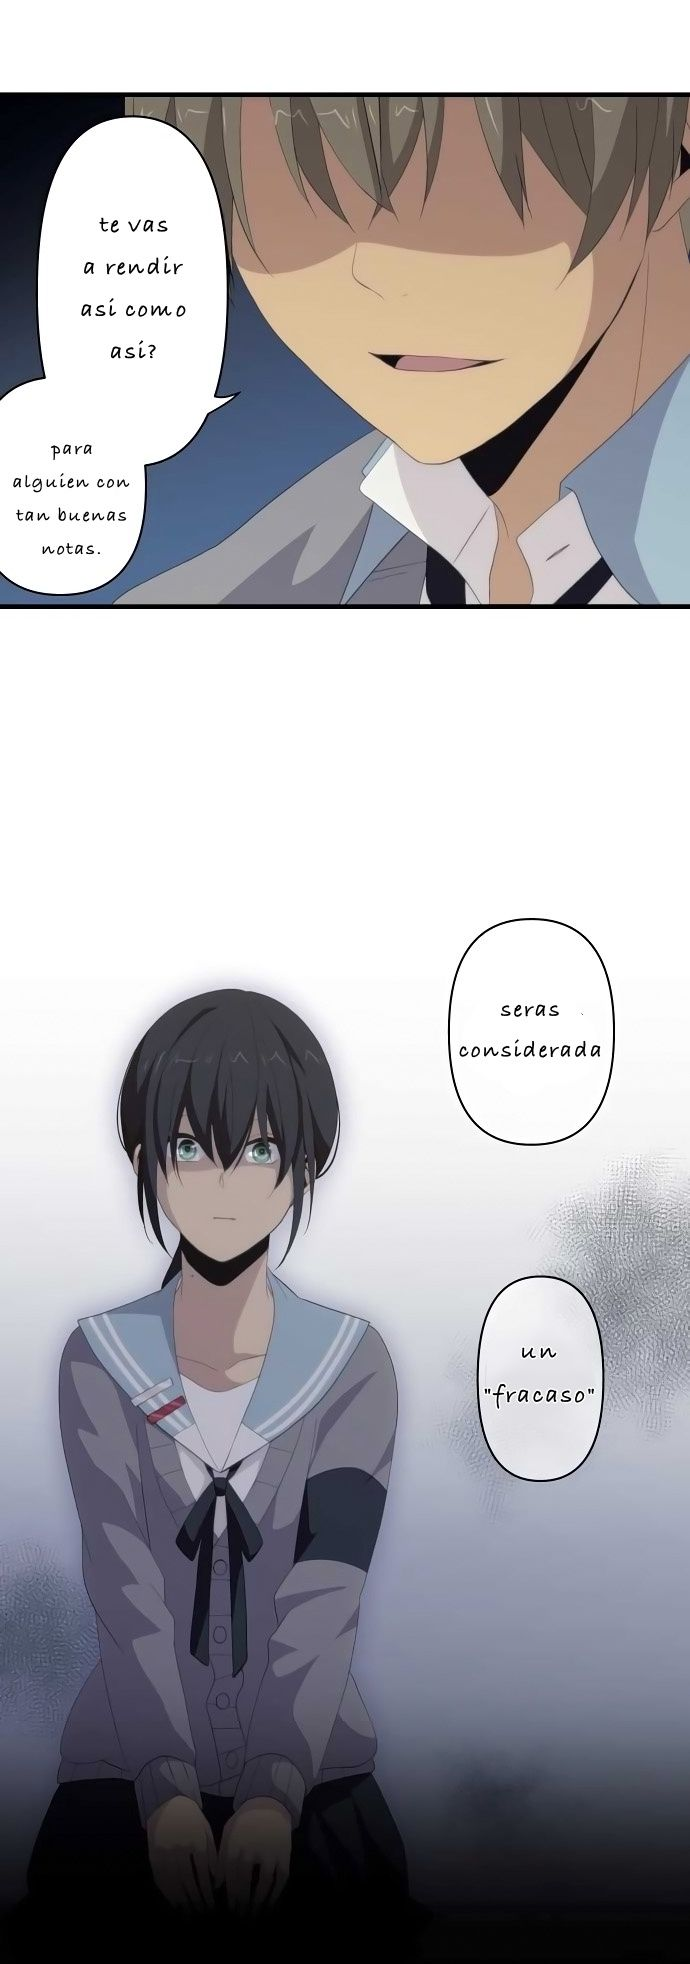 Crunchyroll forum funny anime pictures page 148 - Manga Relife Cap Tulo 116 P Gina 3